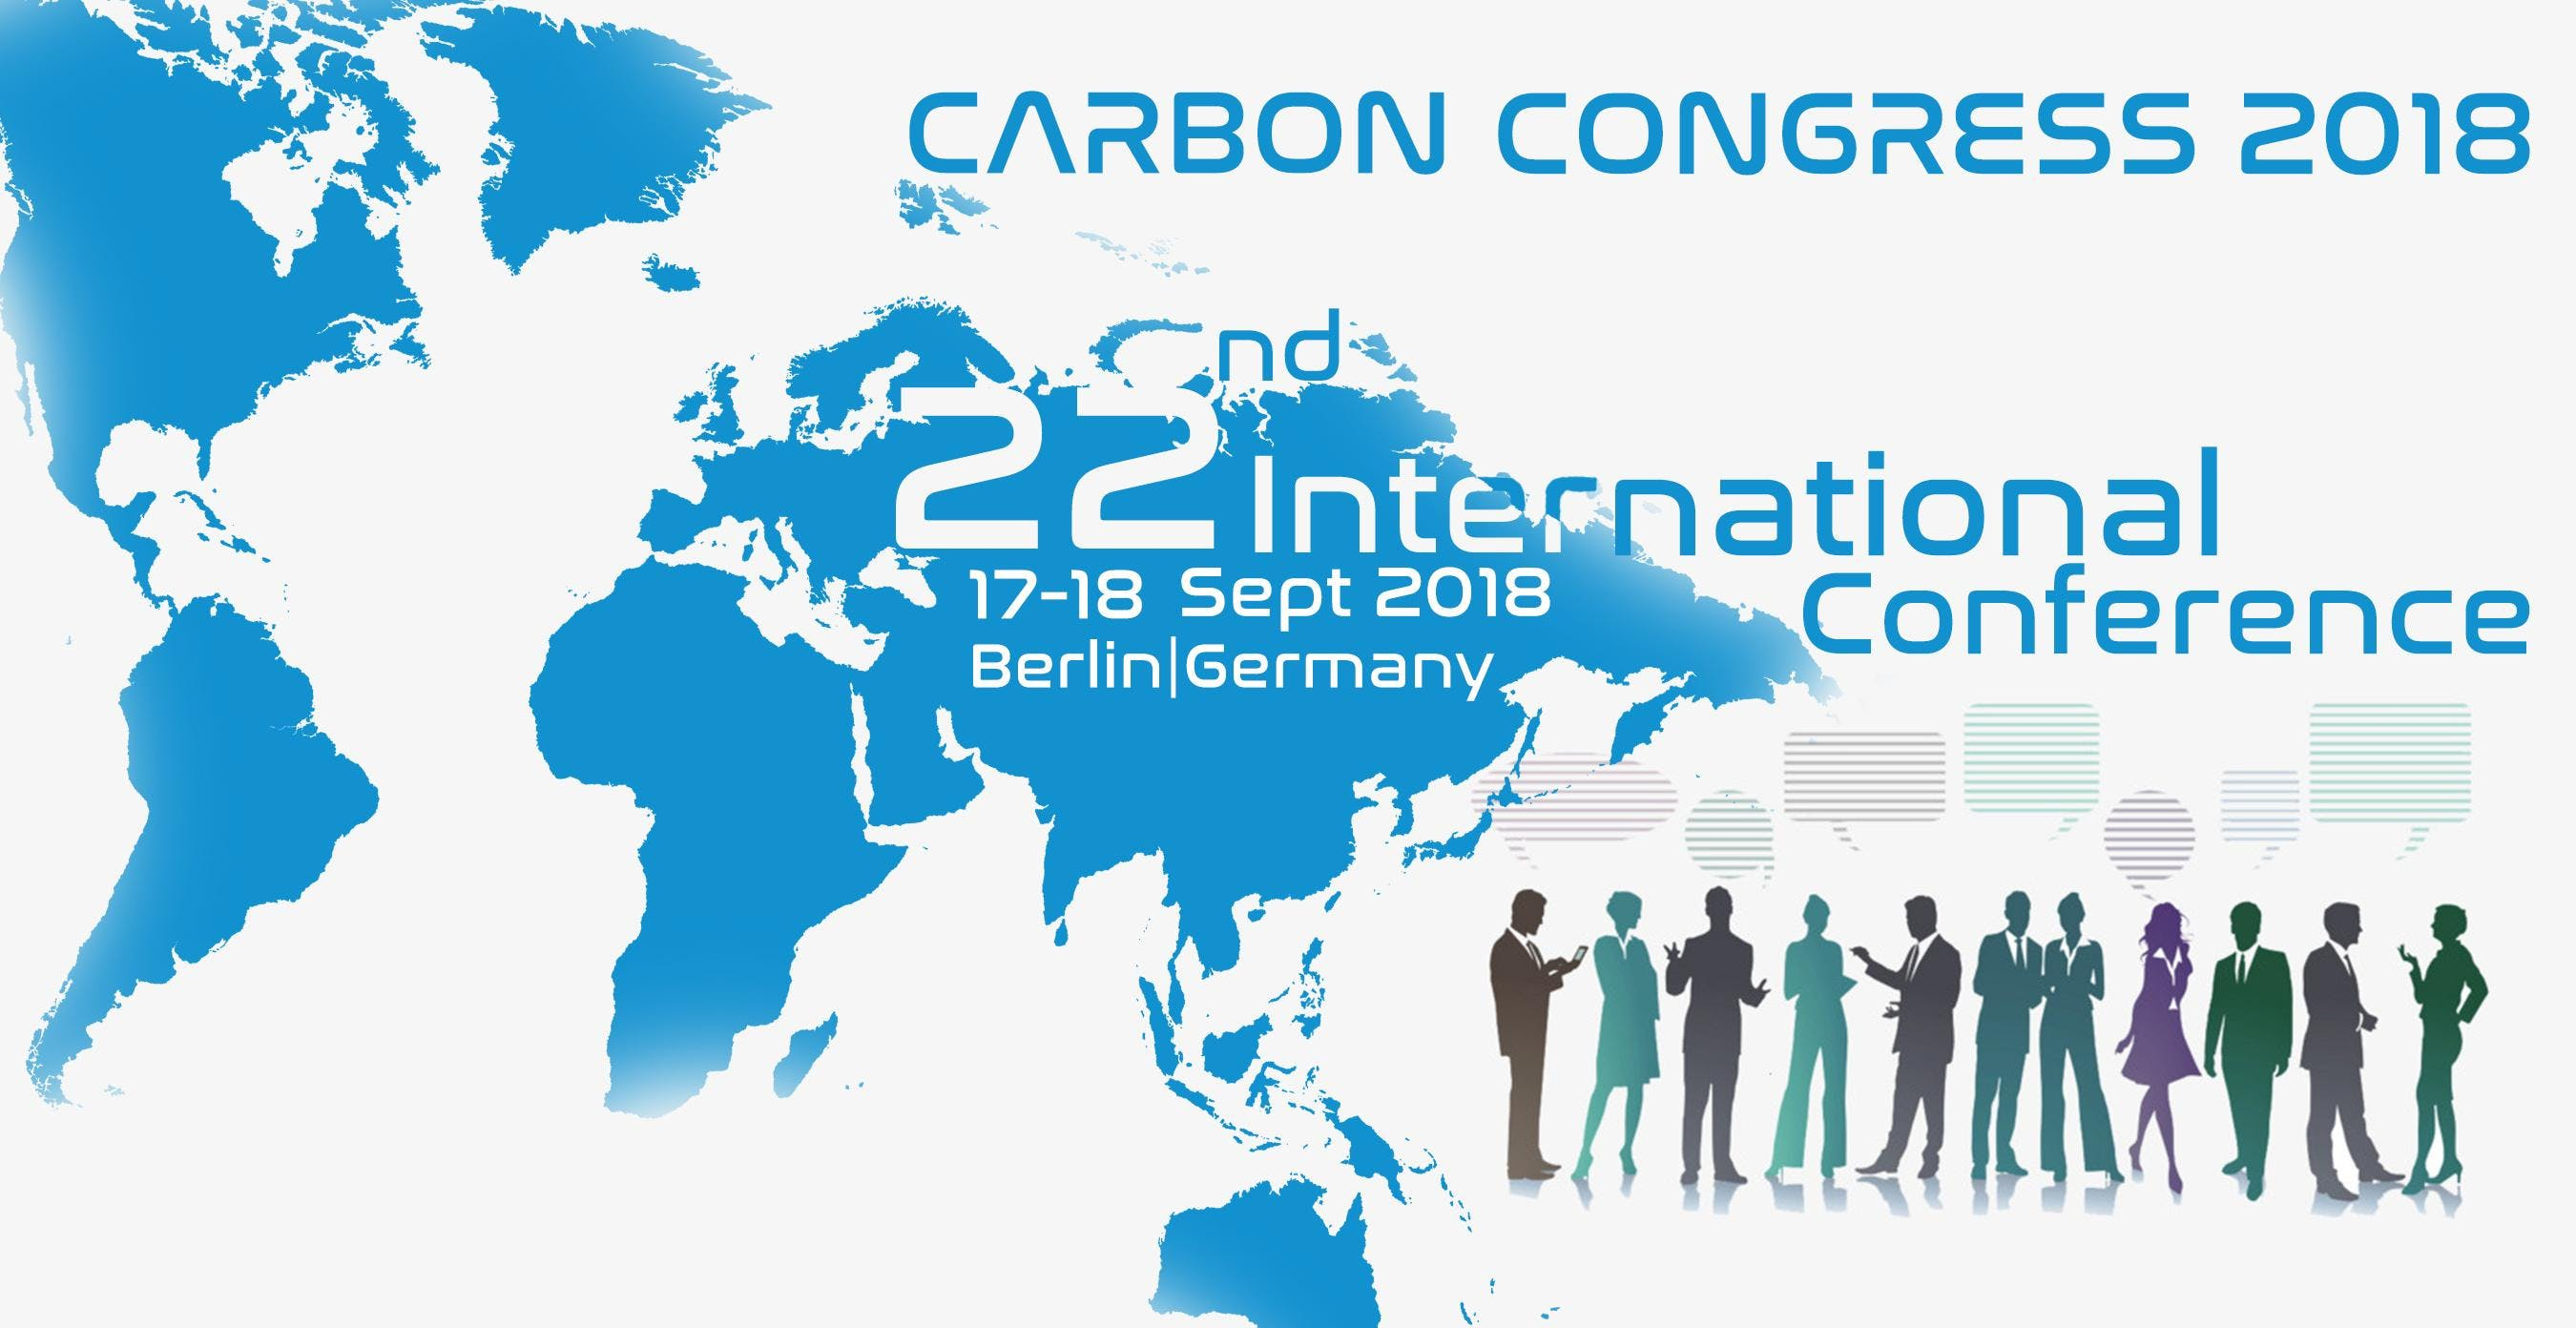 CARBON CONGRESS 2018